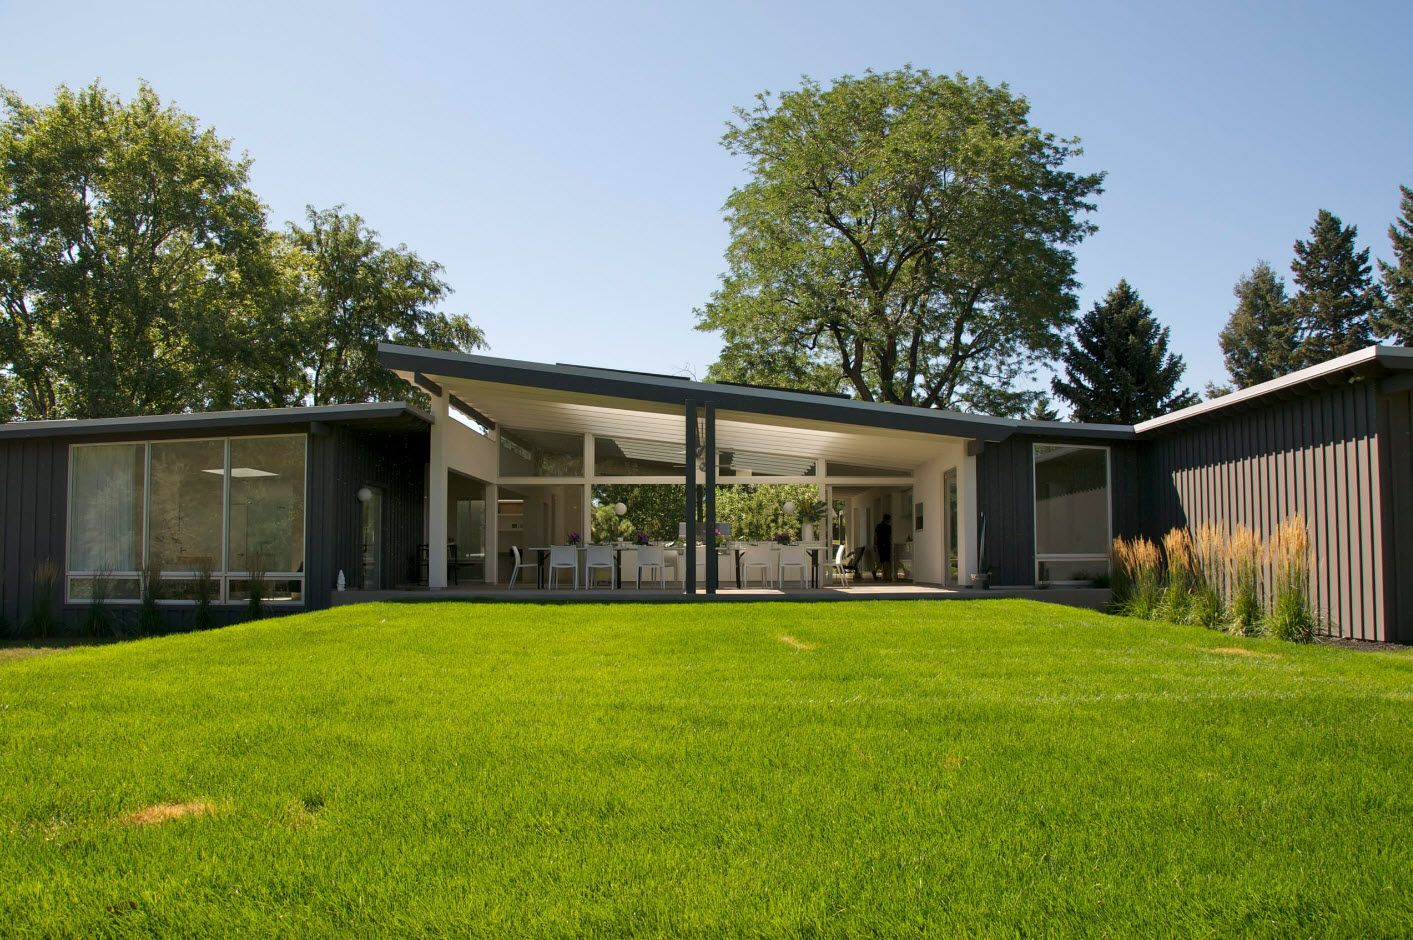 Grass yard and slanted shed roof of the modern styled cottage